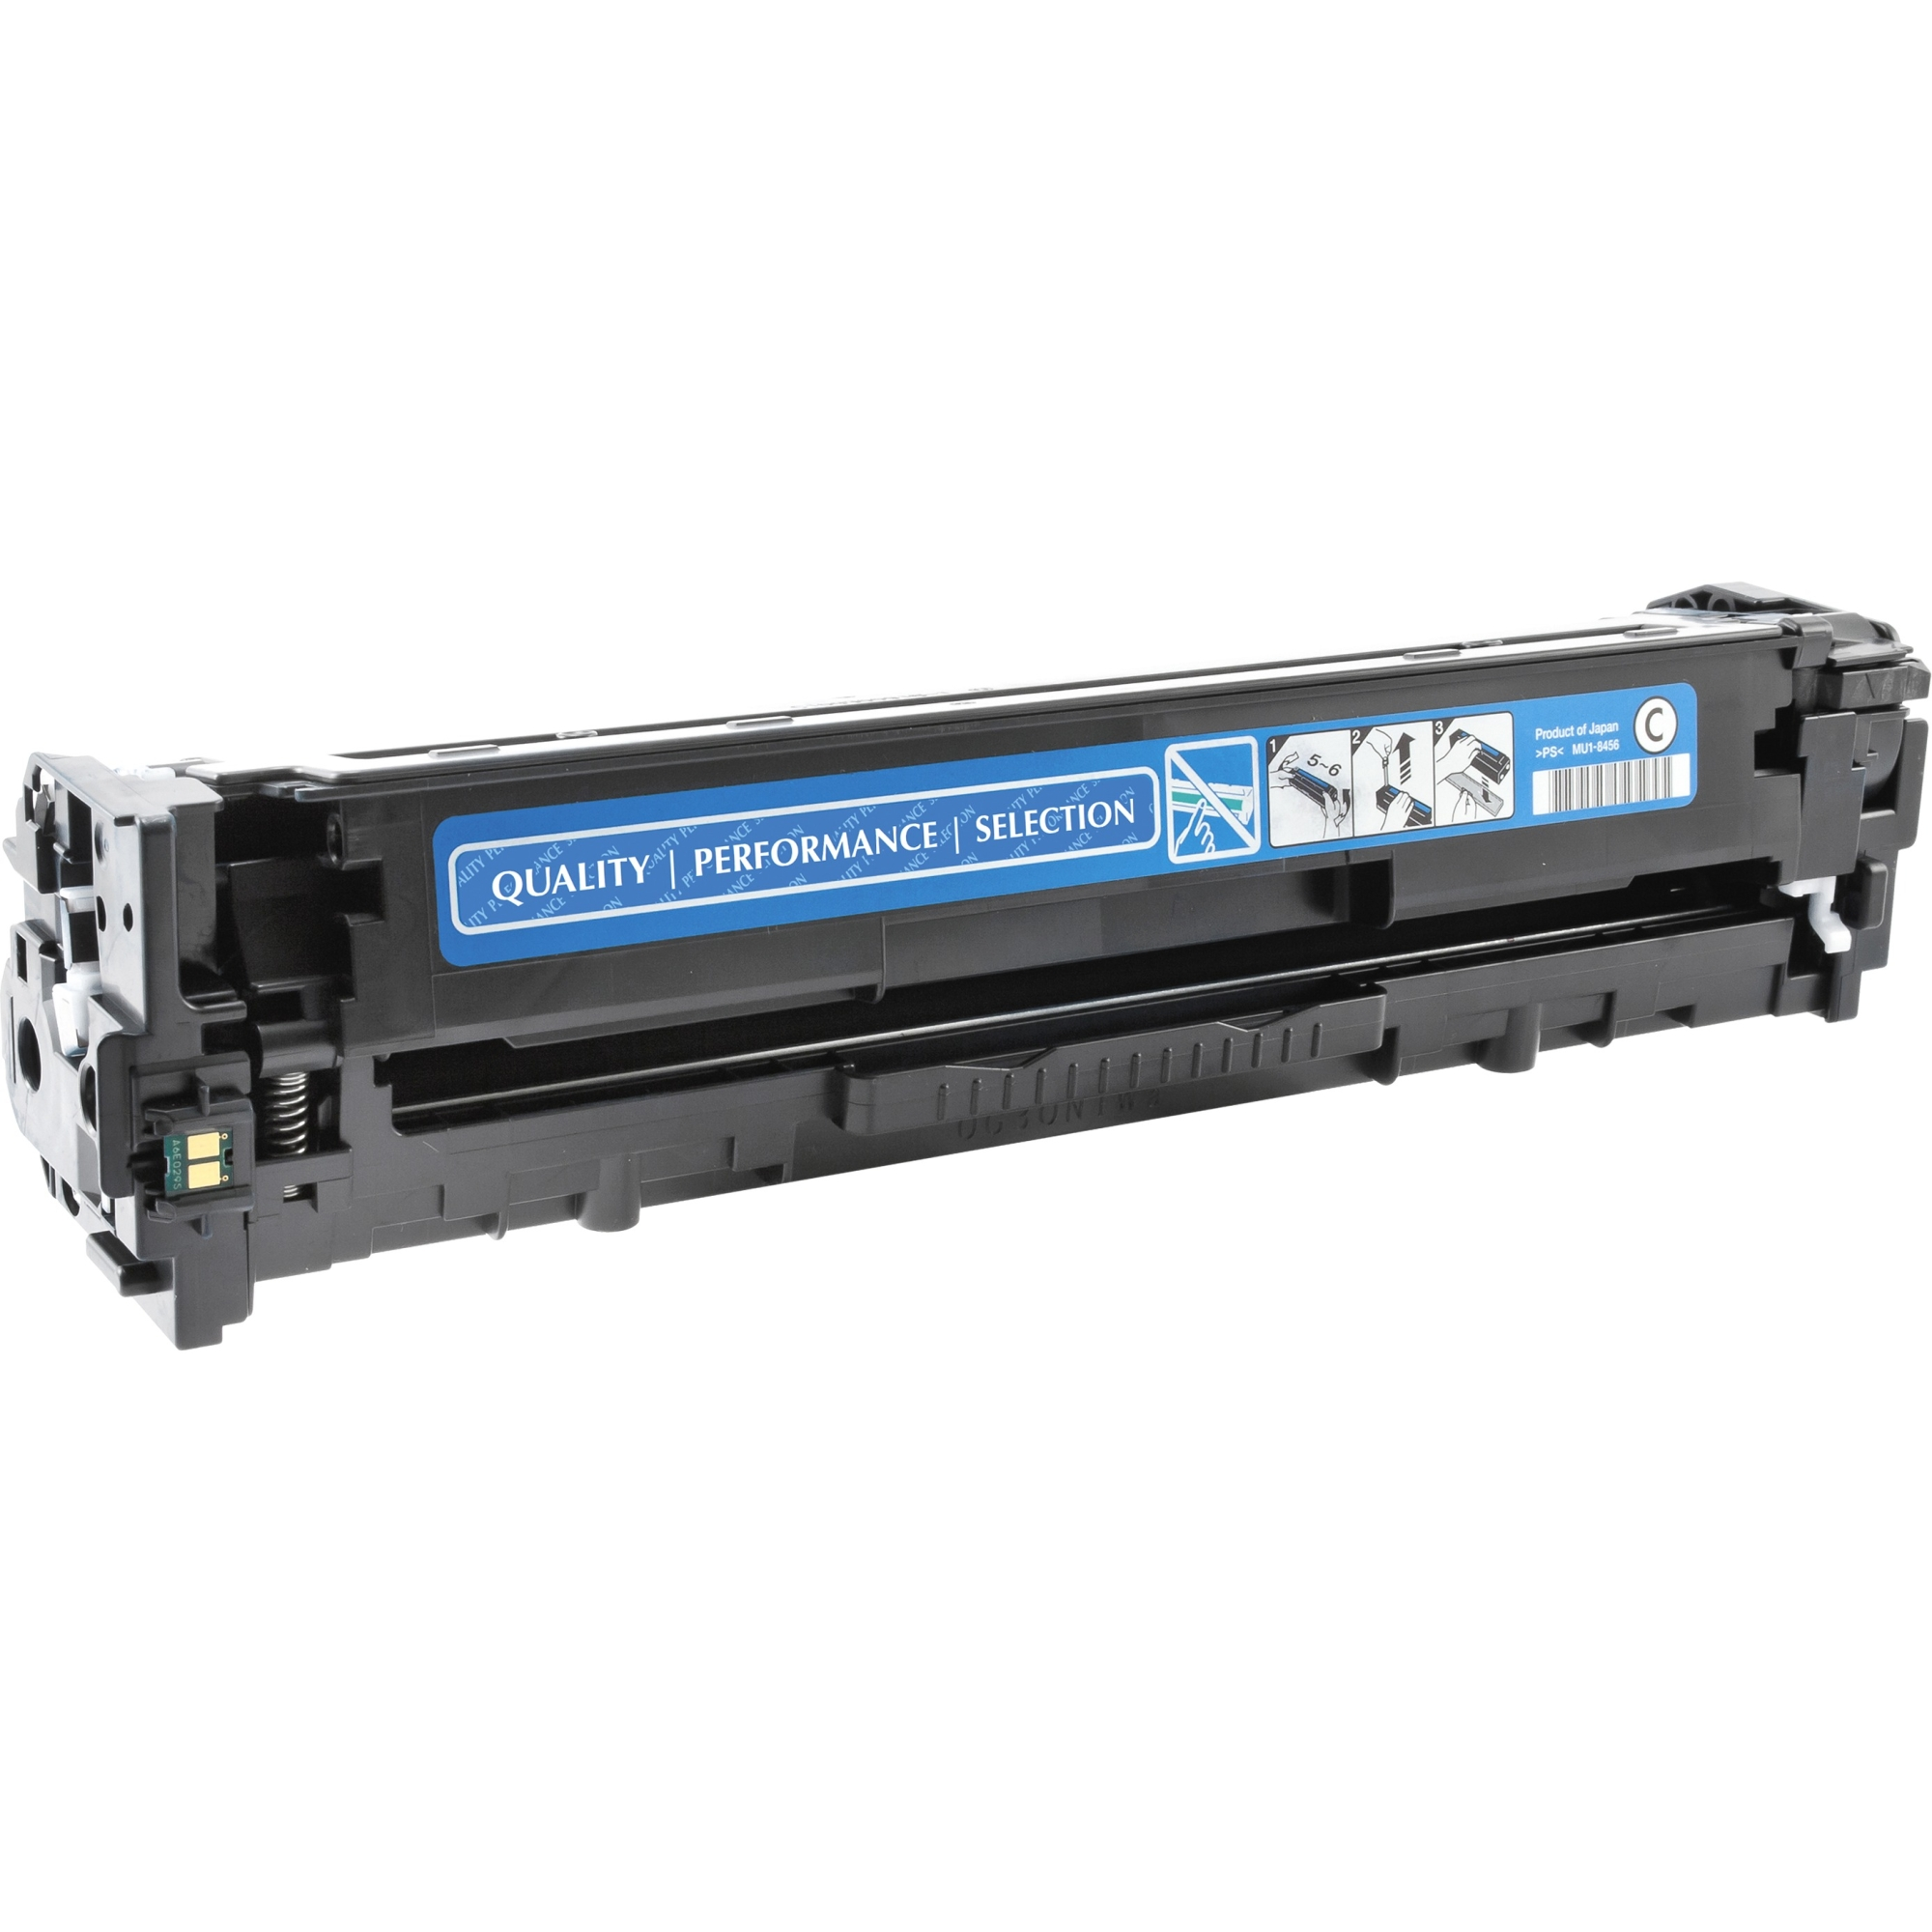 Toner Cartridge - Replacement for HP (CE321A) - Cyan - Laser - 1300 Page